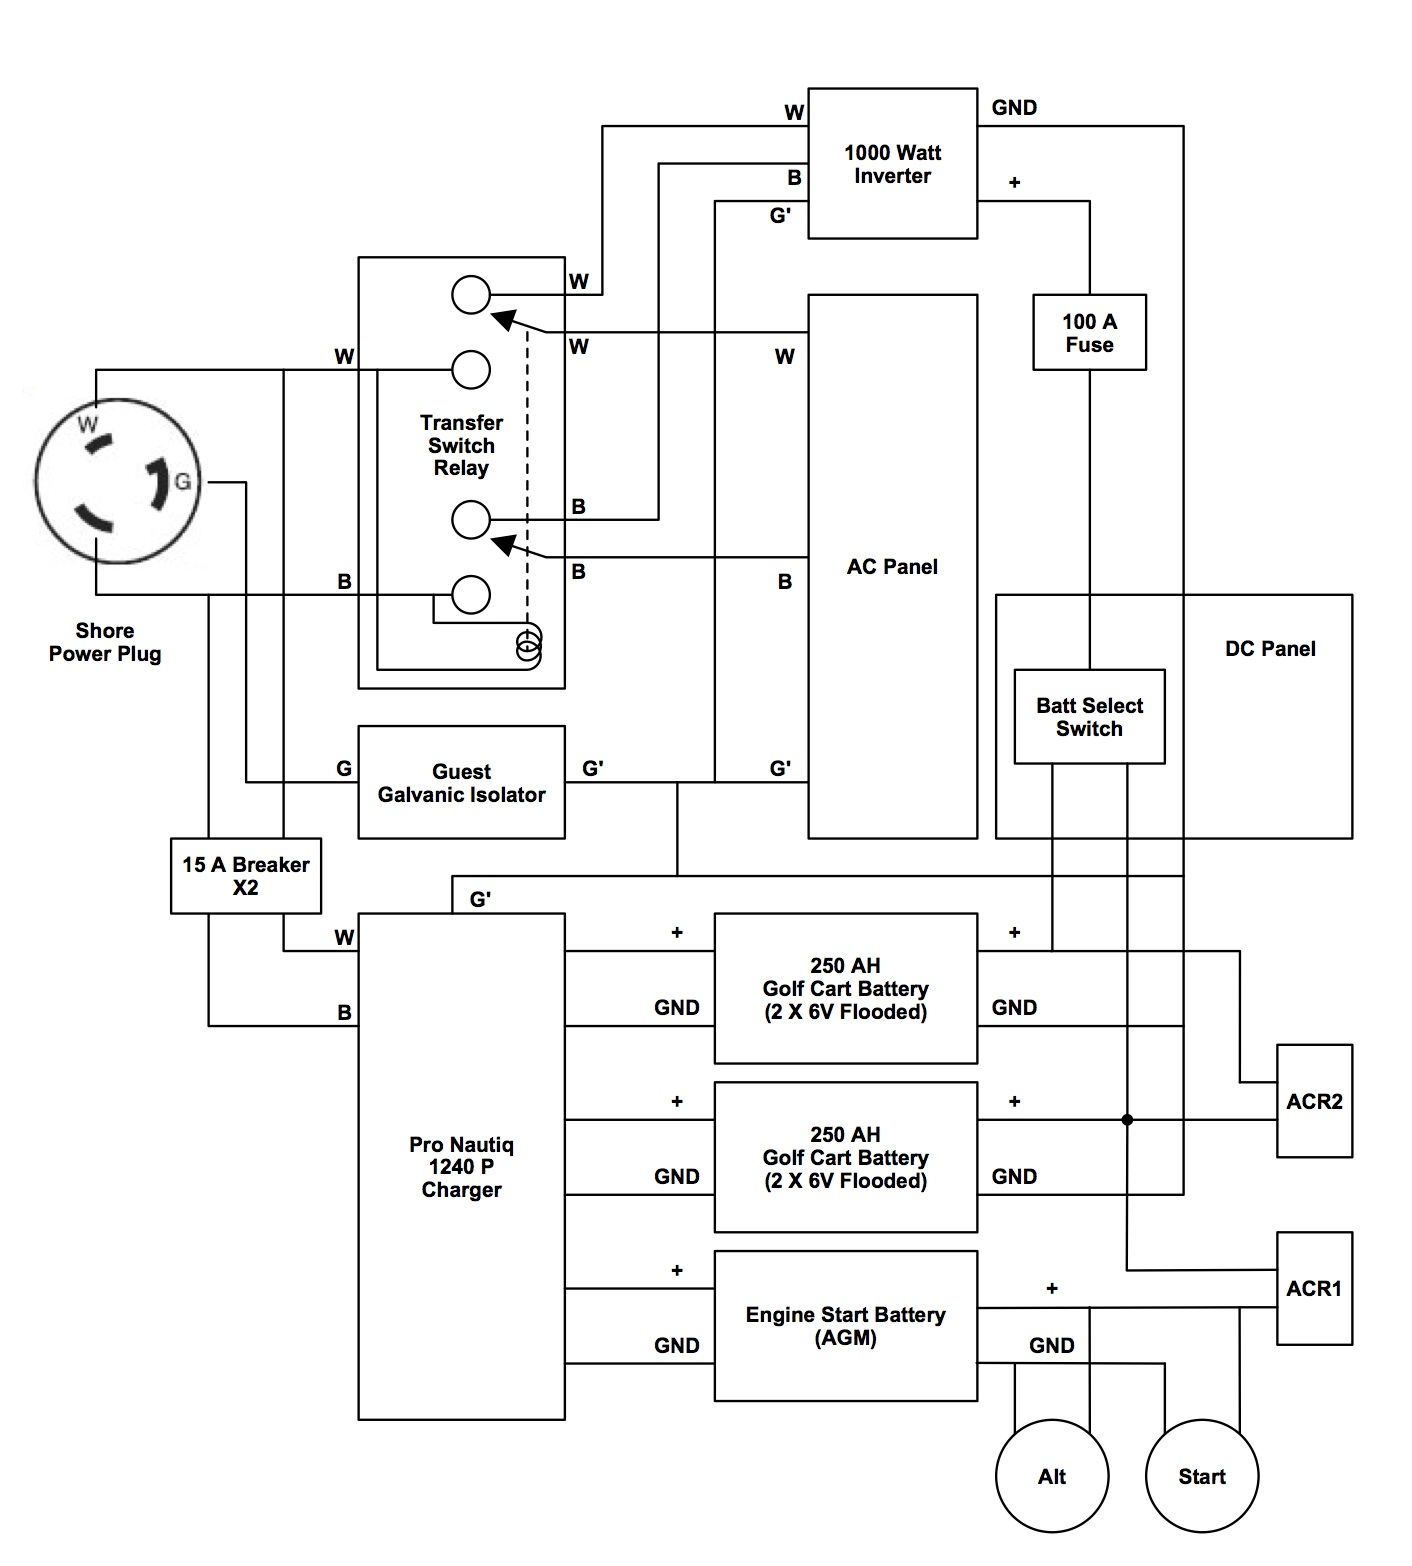 ac isolator wiring diagram ac image wiring diagram wickes extractor fan wiring diagram wickes auto wiring diagram on ac isolator wiring diagram